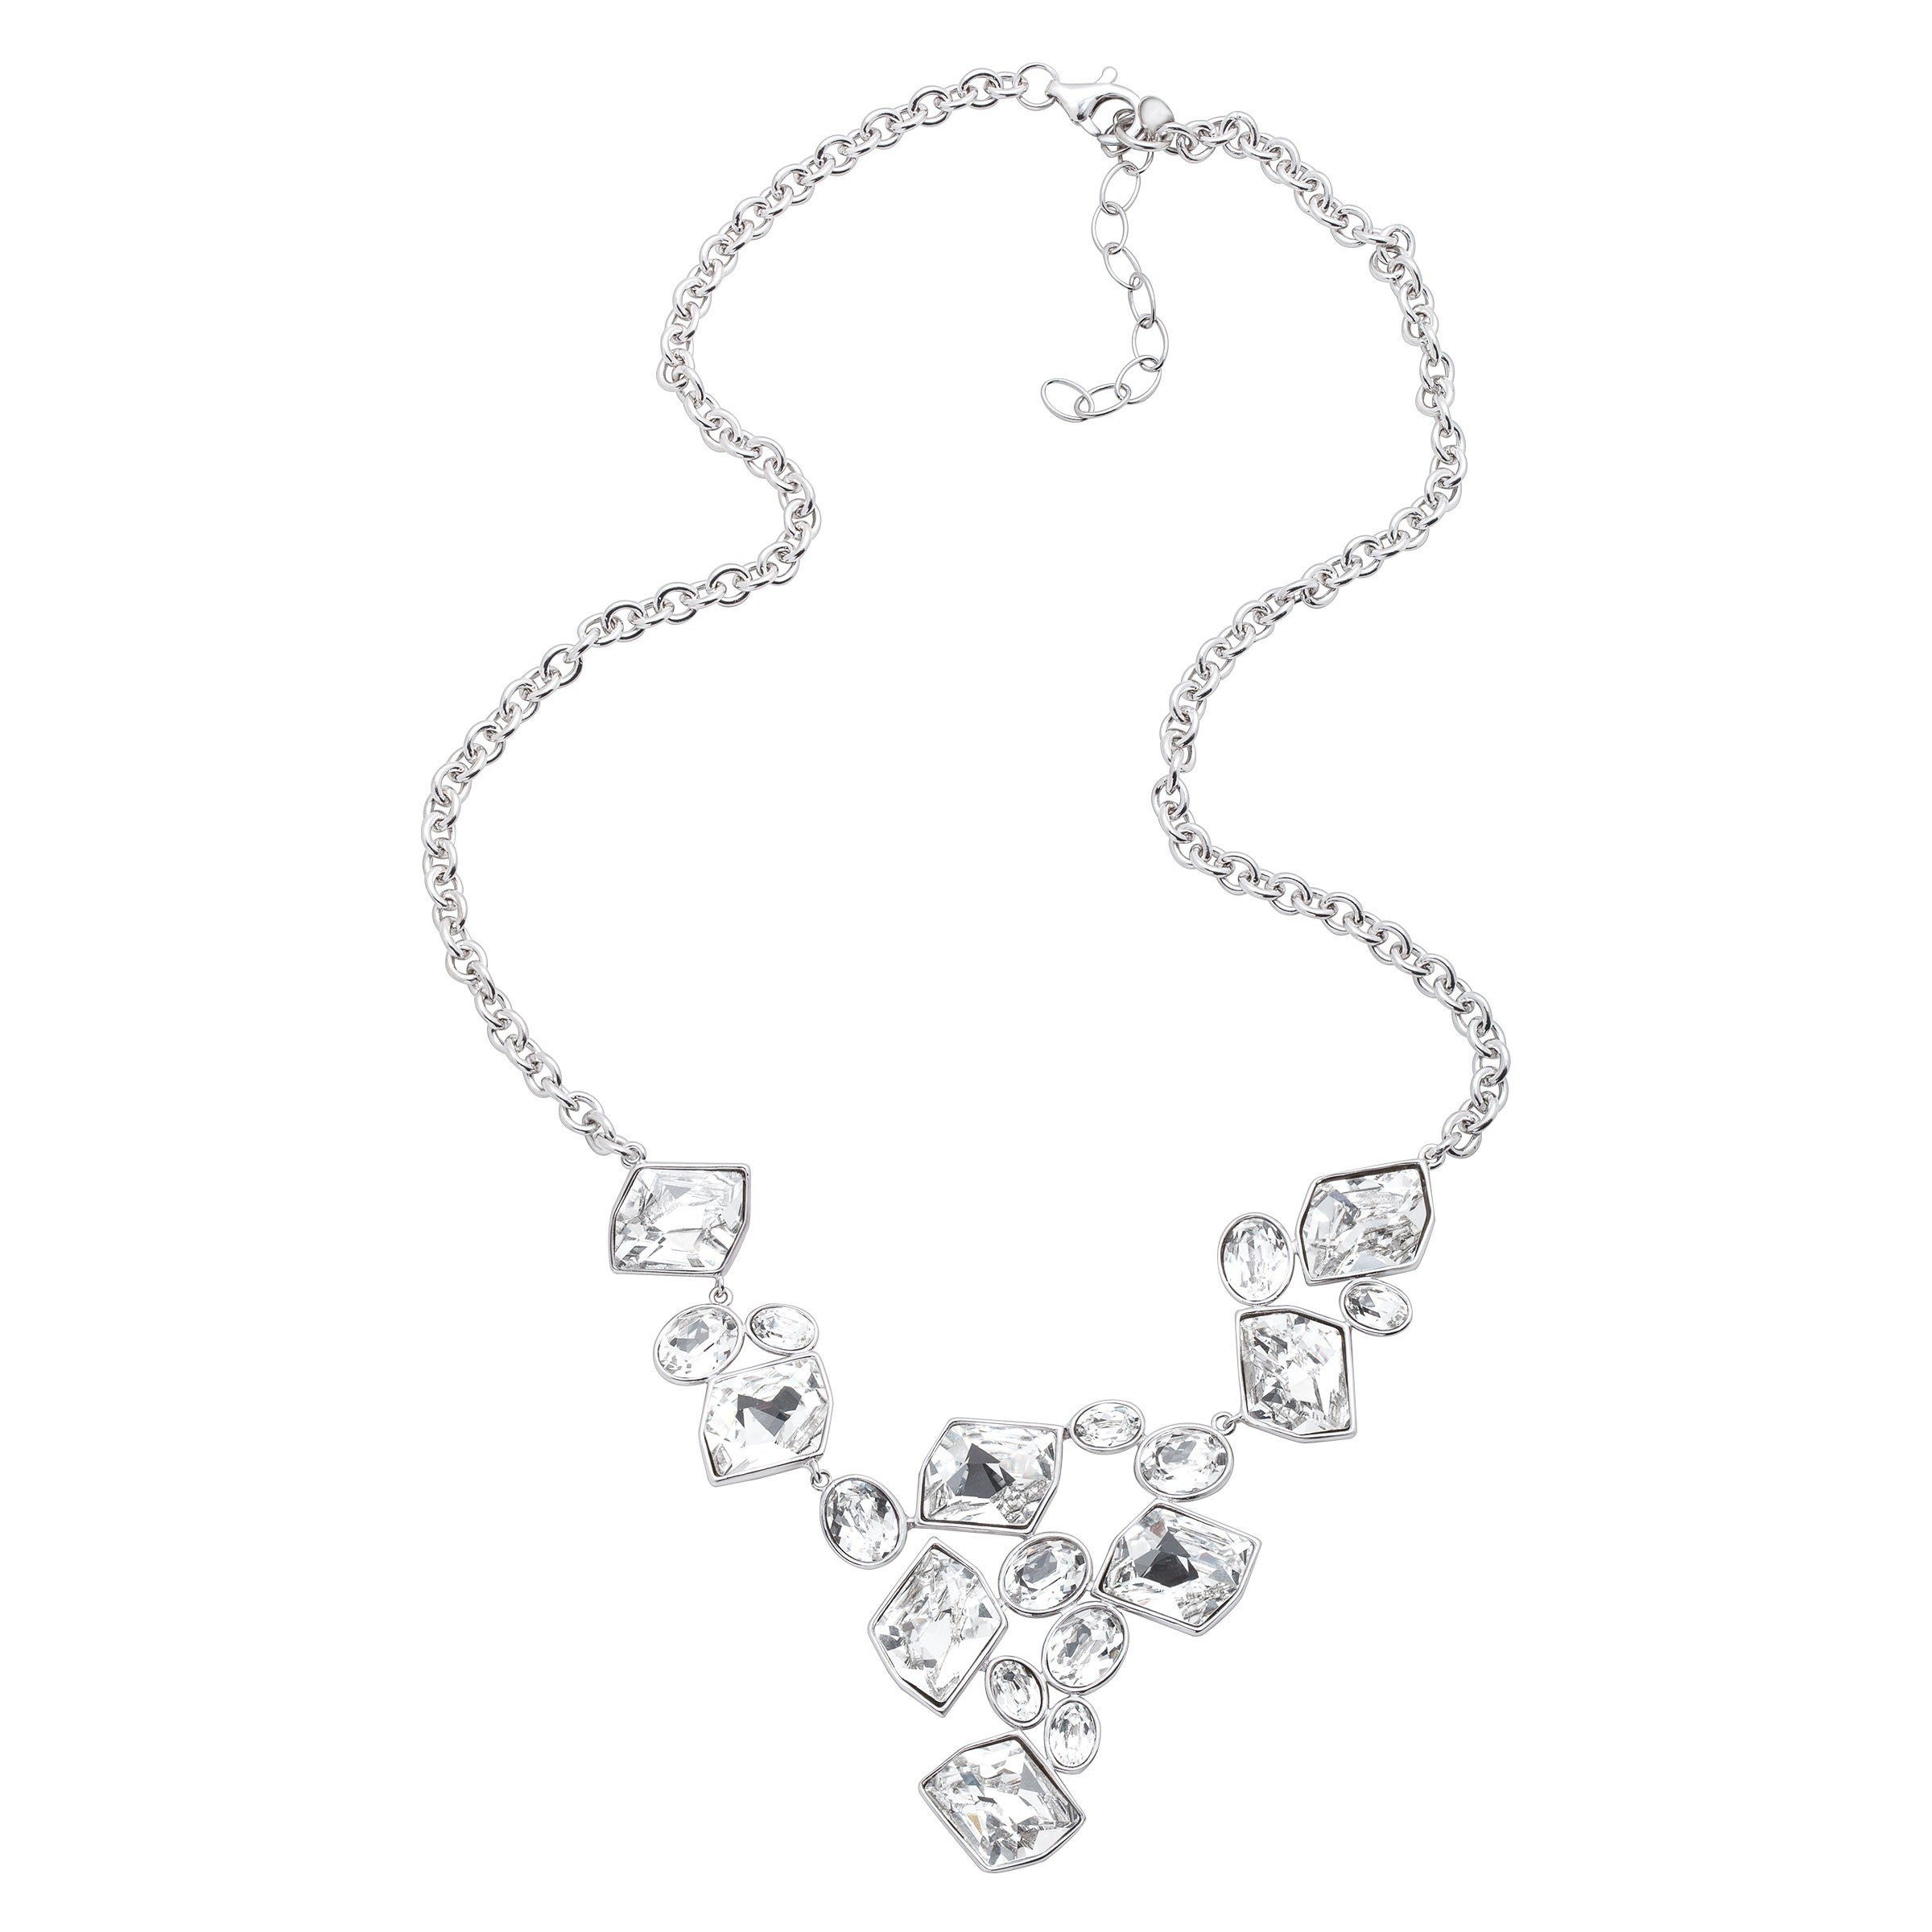 c1ade6f774017e Shop Crystaluxe V-Shape Necklace with Swarovski Crystals in Sterling Silver  - White - On Sale - Free Shipping Today - Overstock - 13884795